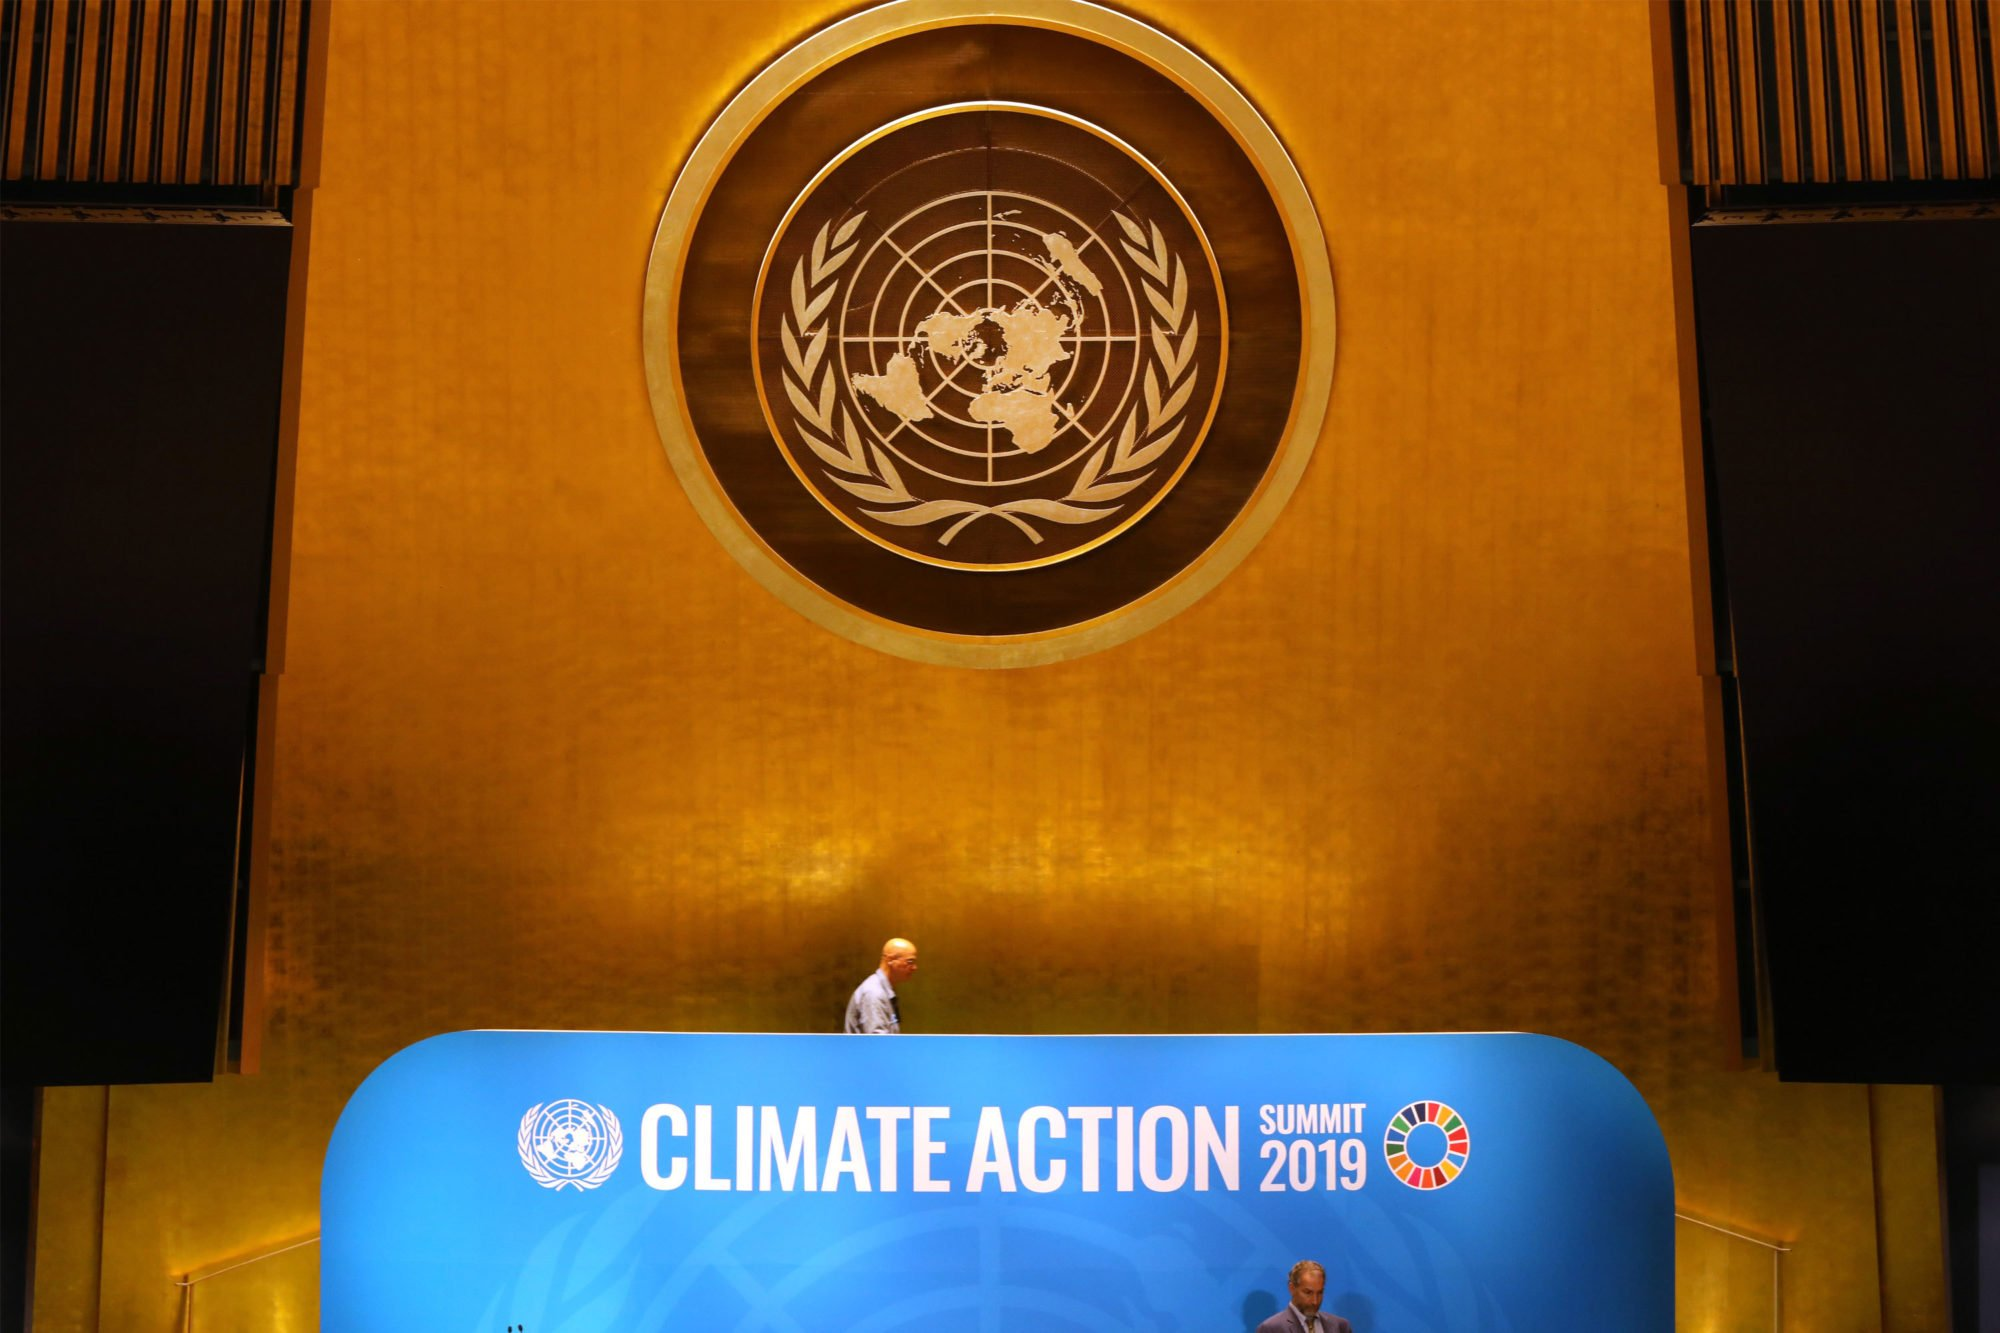 The Word Nobody Wanted to Say at the UN Climate Action Summit